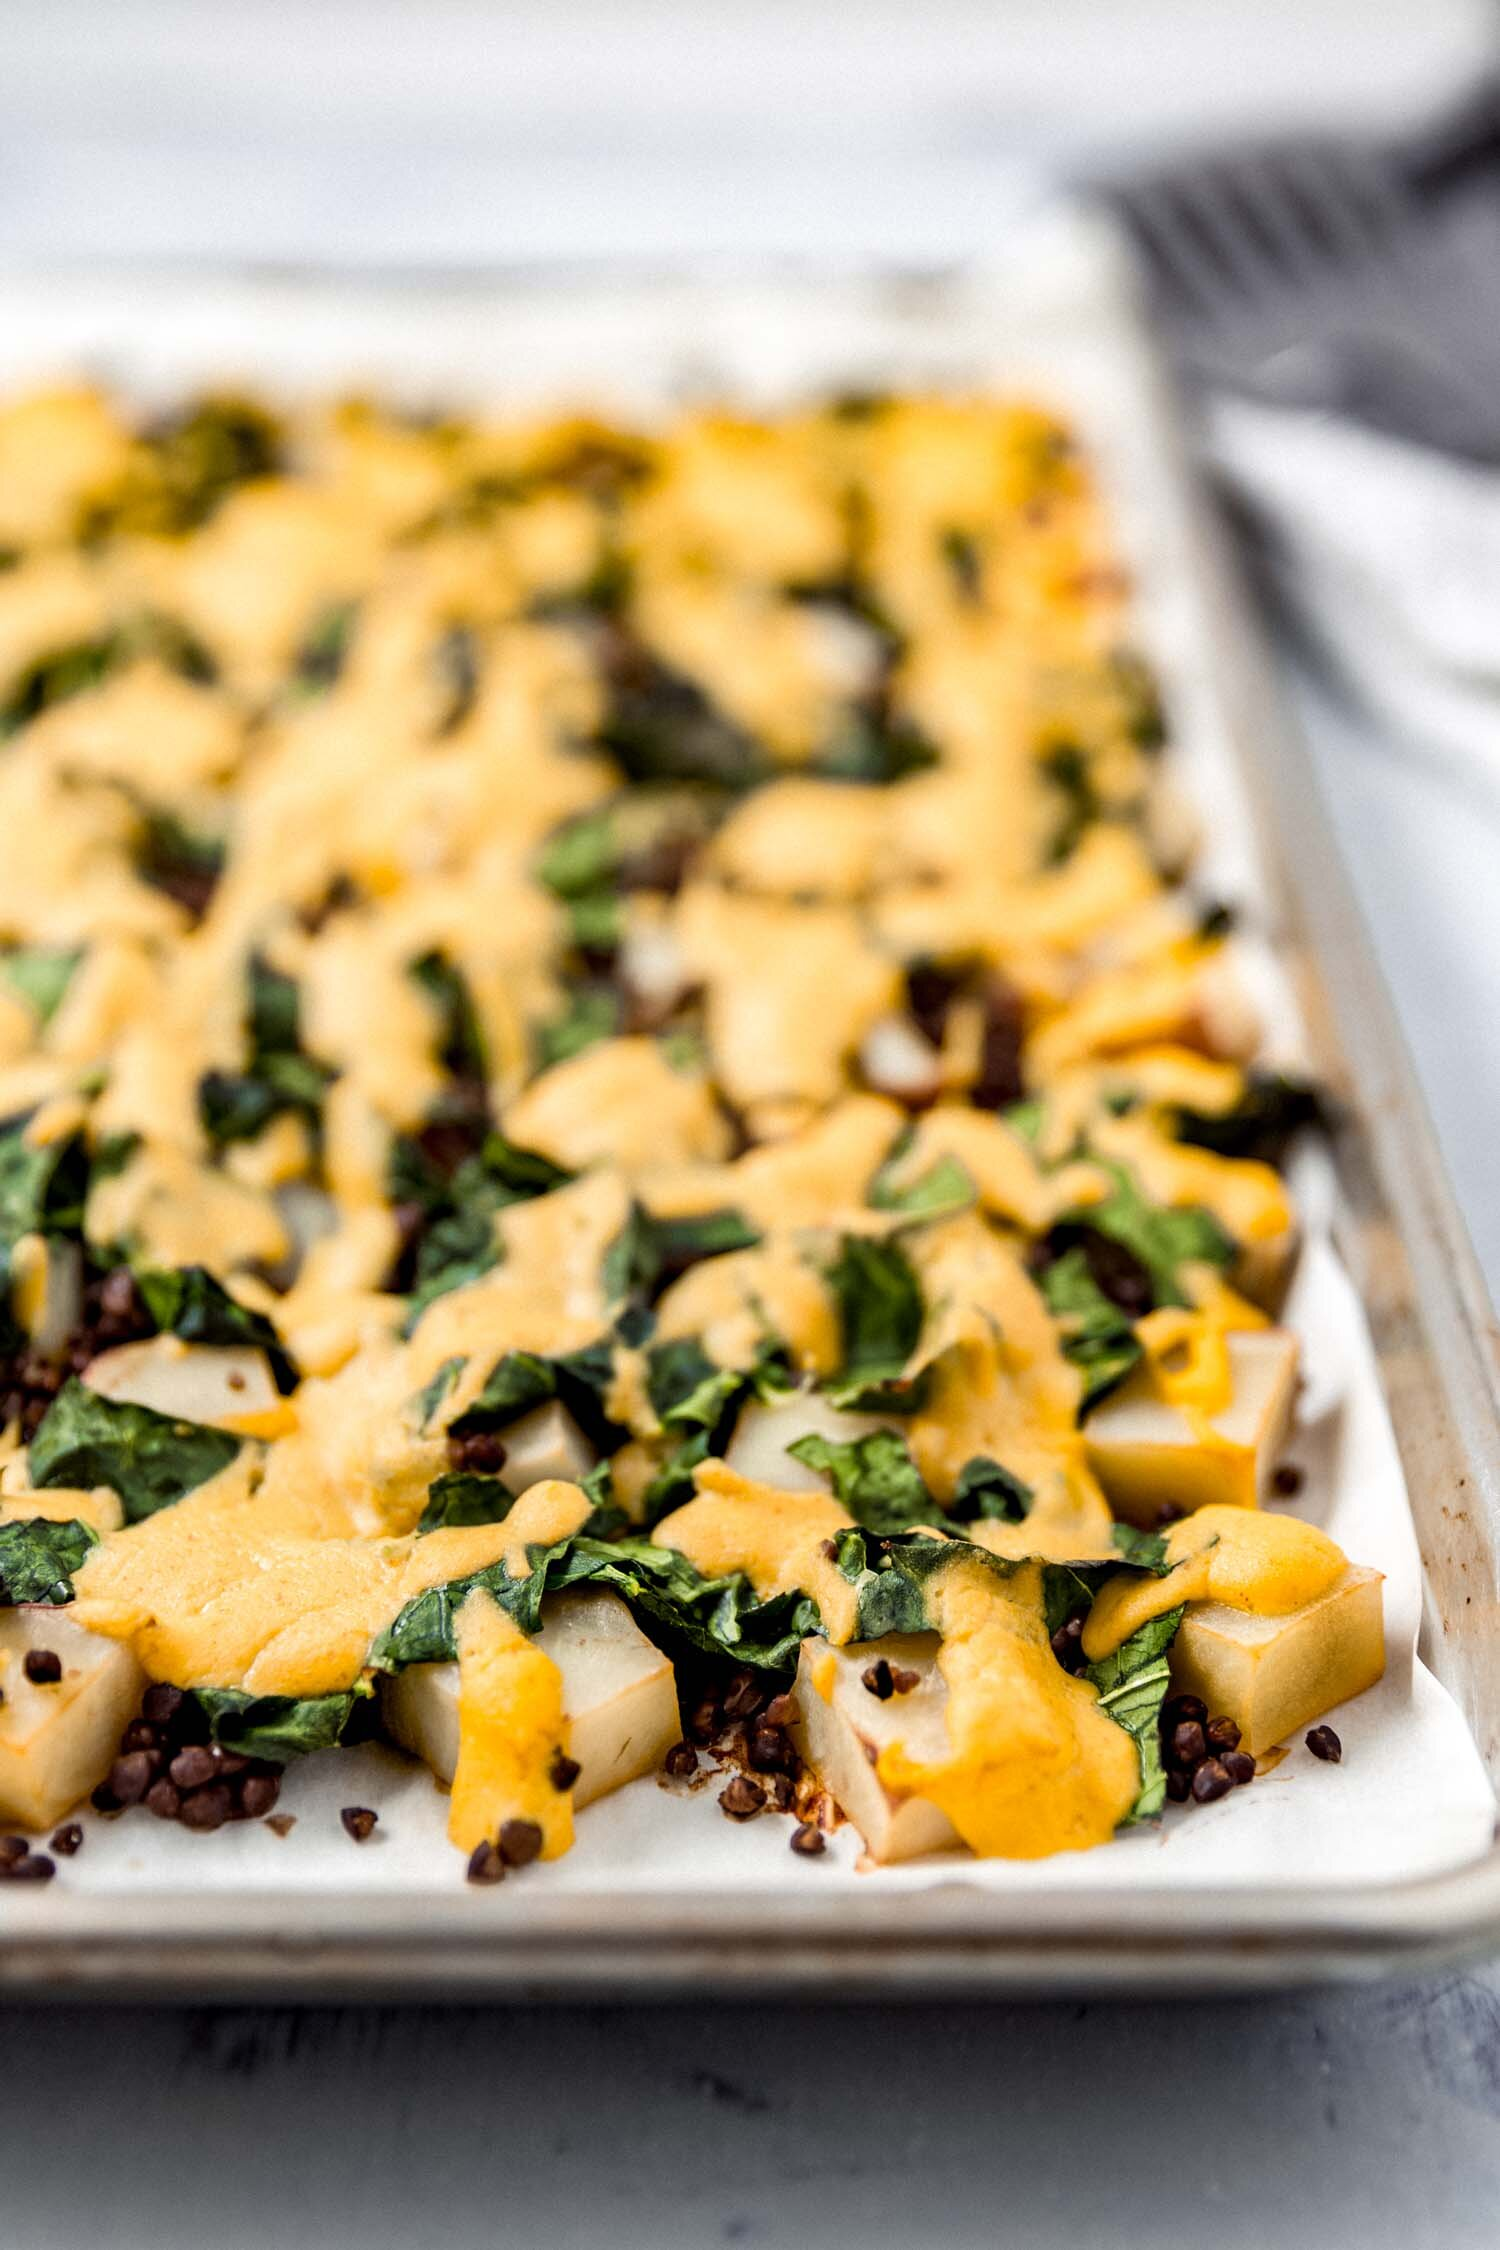 kale-cheese-potatoes-tray.jpg